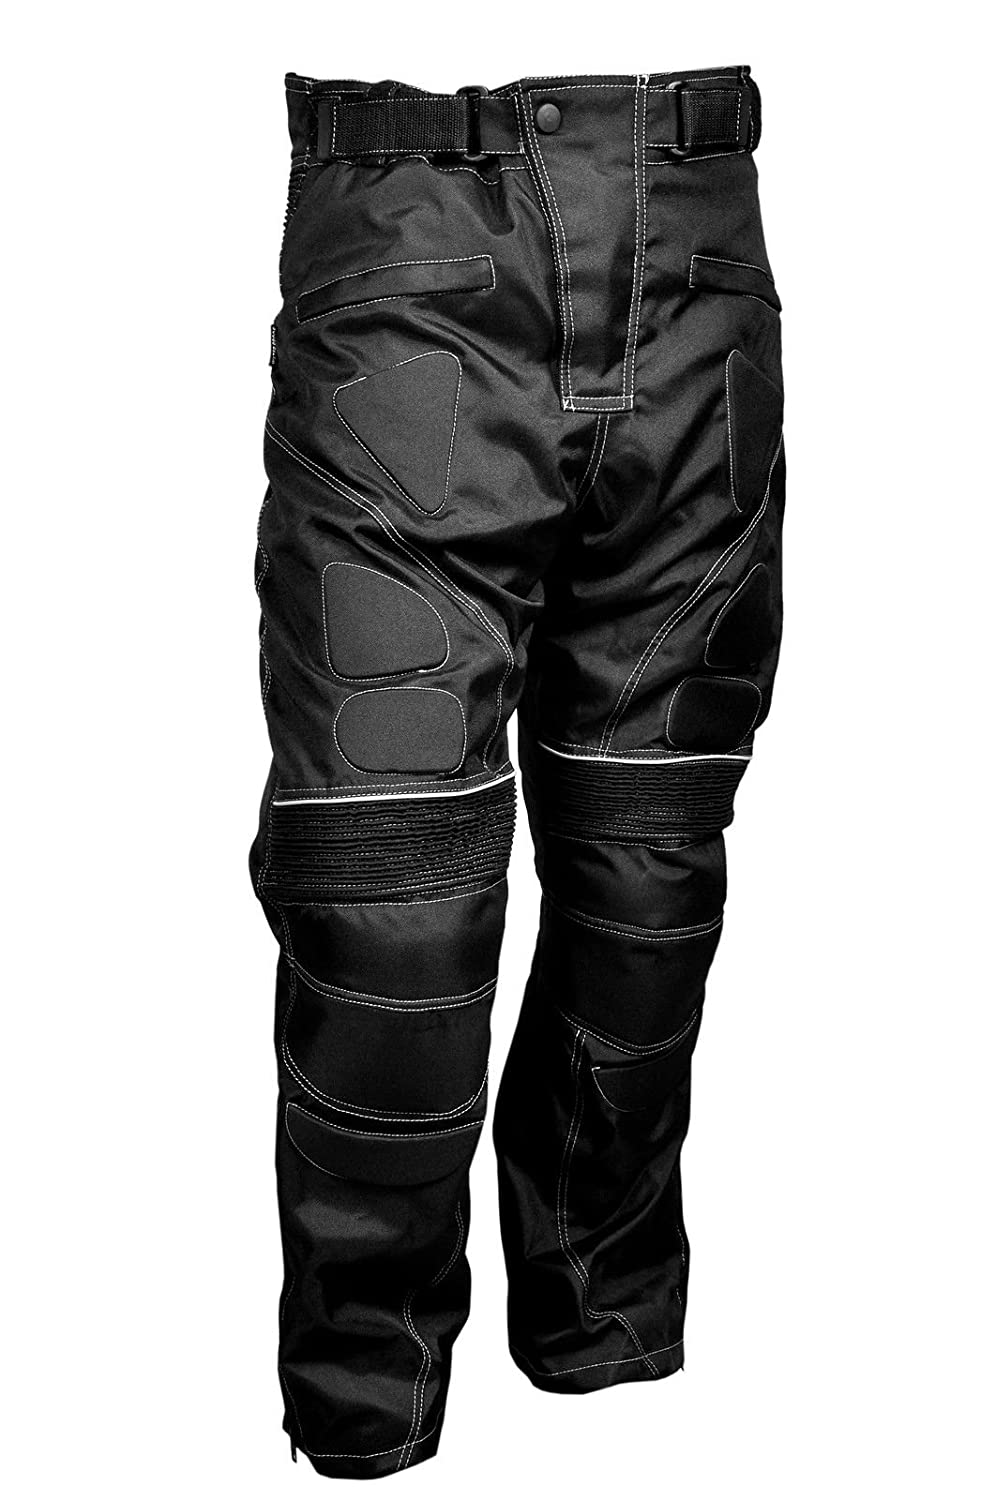 Sterling Sports/®Men Textile Waterproof Motorbike Motorcycle Thermal Armoured Trouser Cargo Pant Black Cameo Grey Green Cameo Green, 34Wx34L